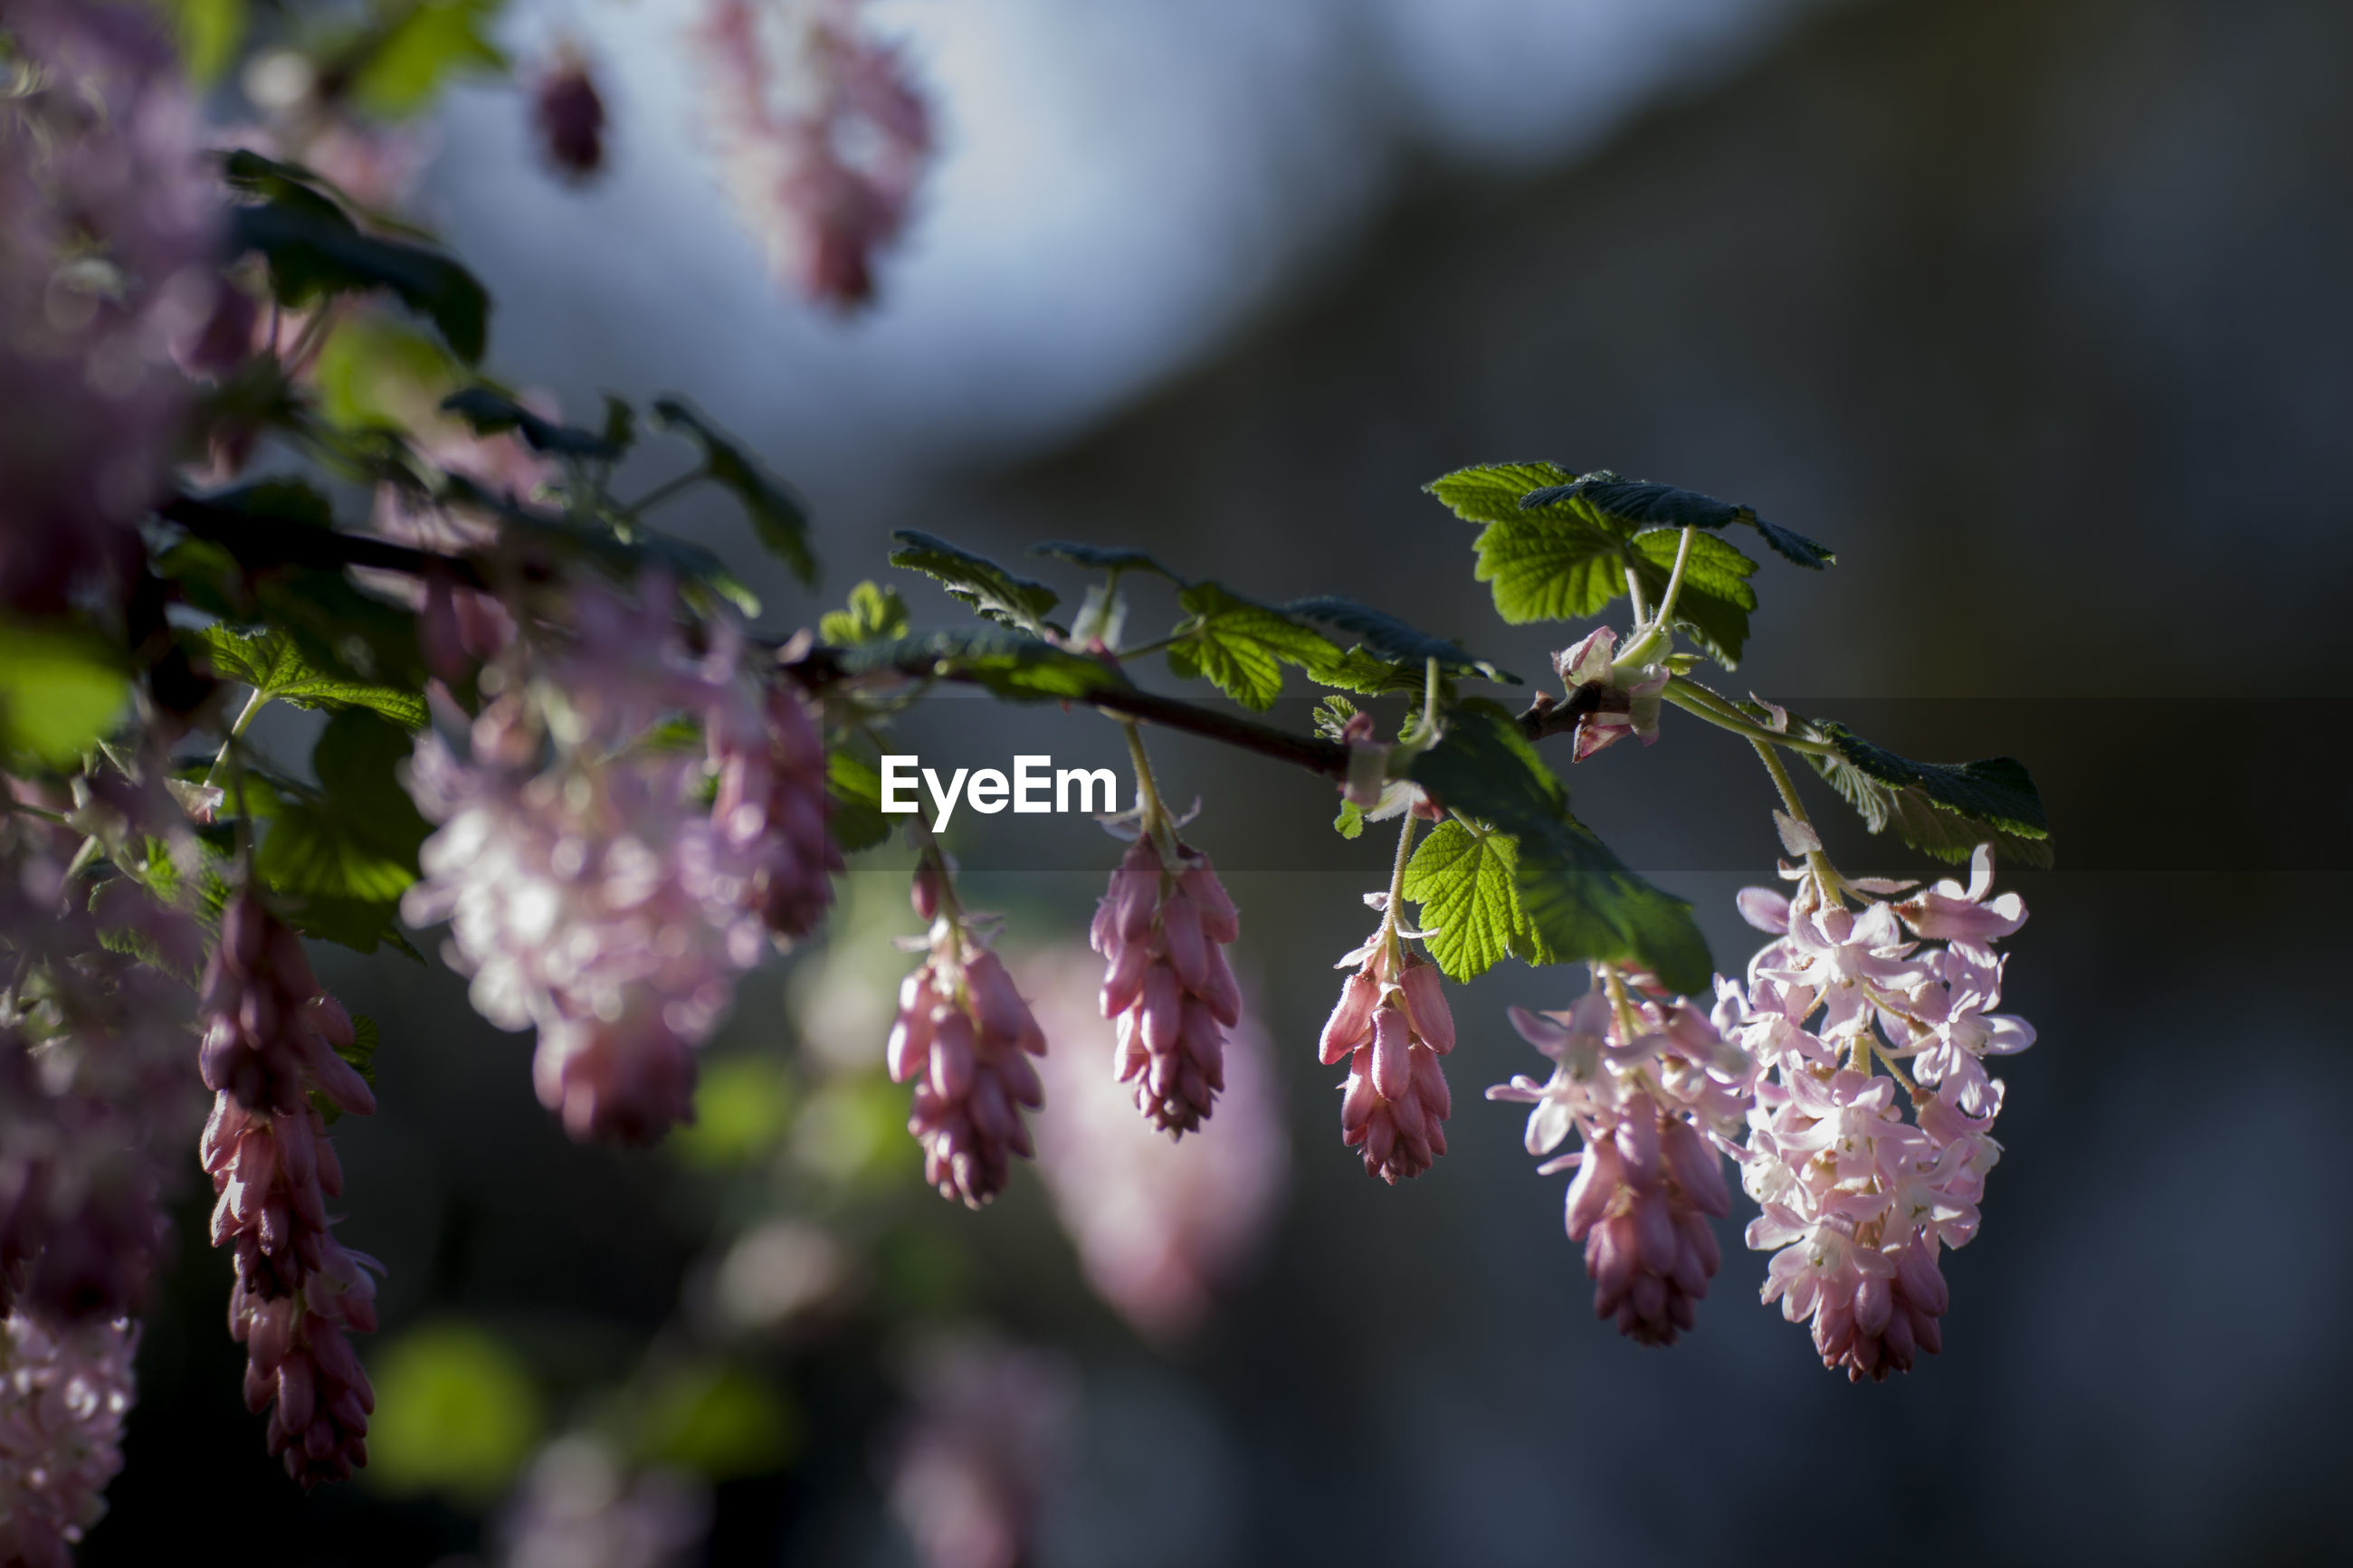 CLOSE-UP OF FRESH PINK FLOWERS ON BRANCH